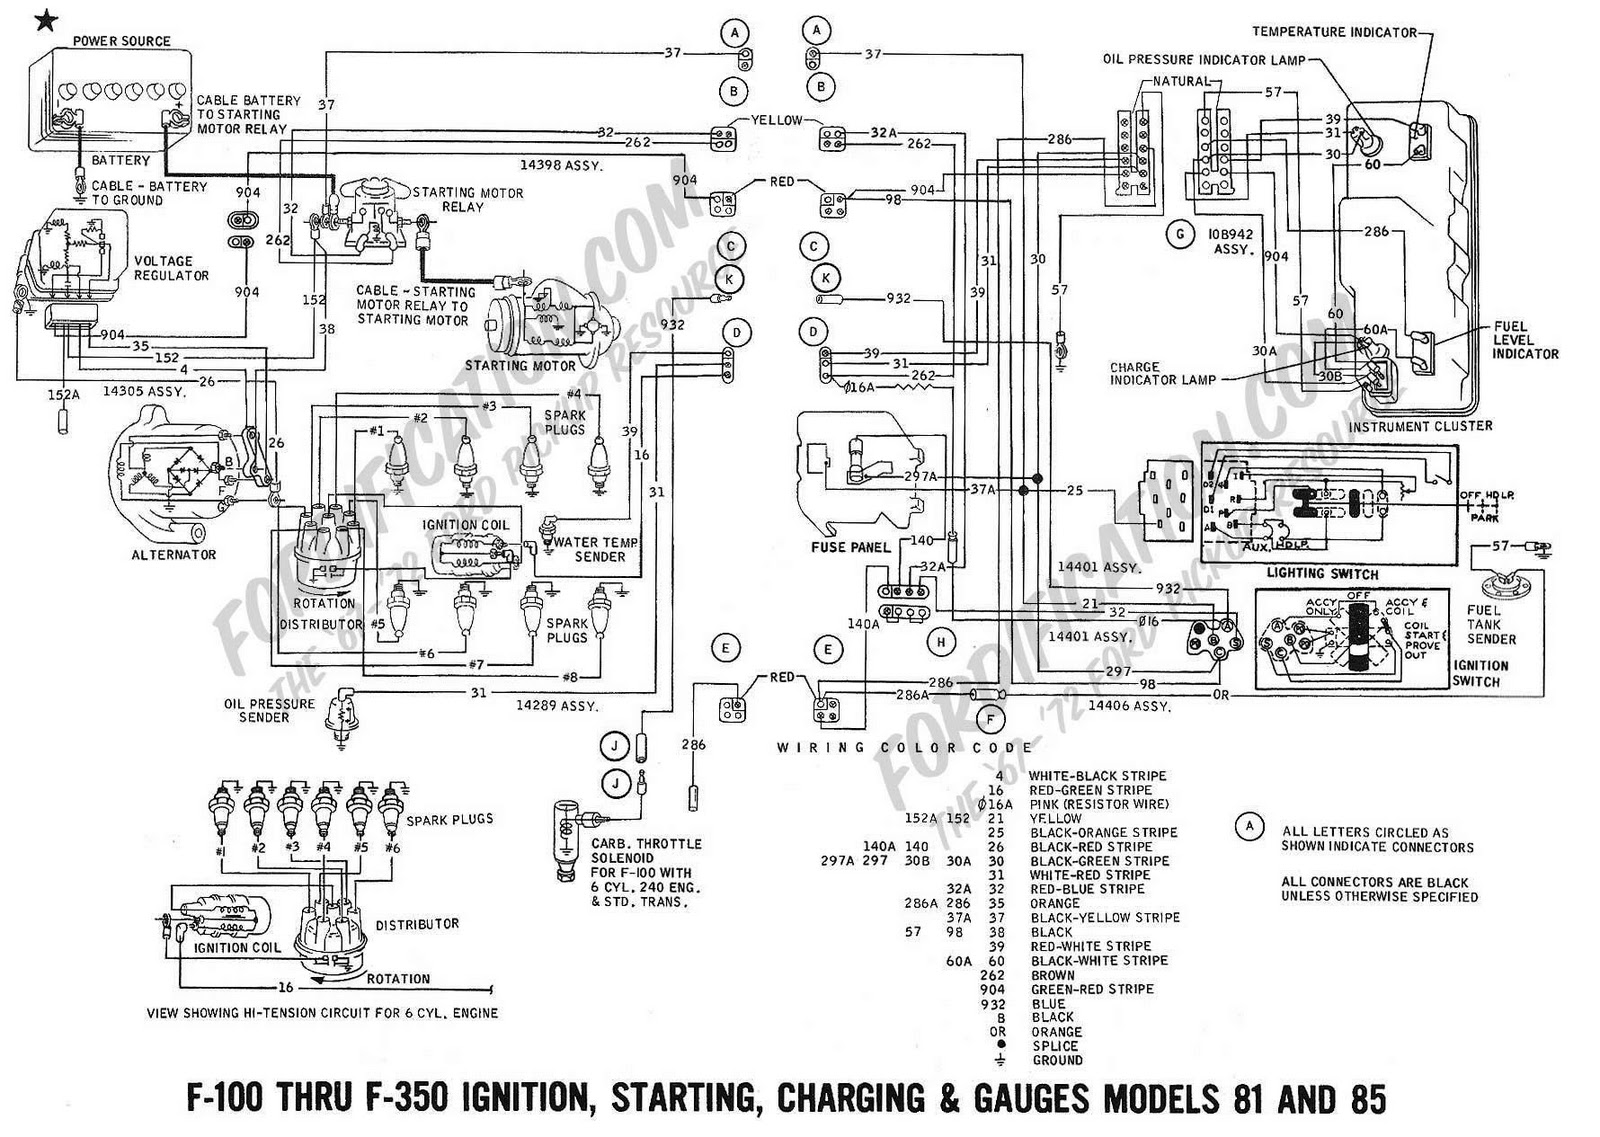 1969 Ford F100 F350 Ignition Starting on 70 Chevy Truck Wiring Diagram